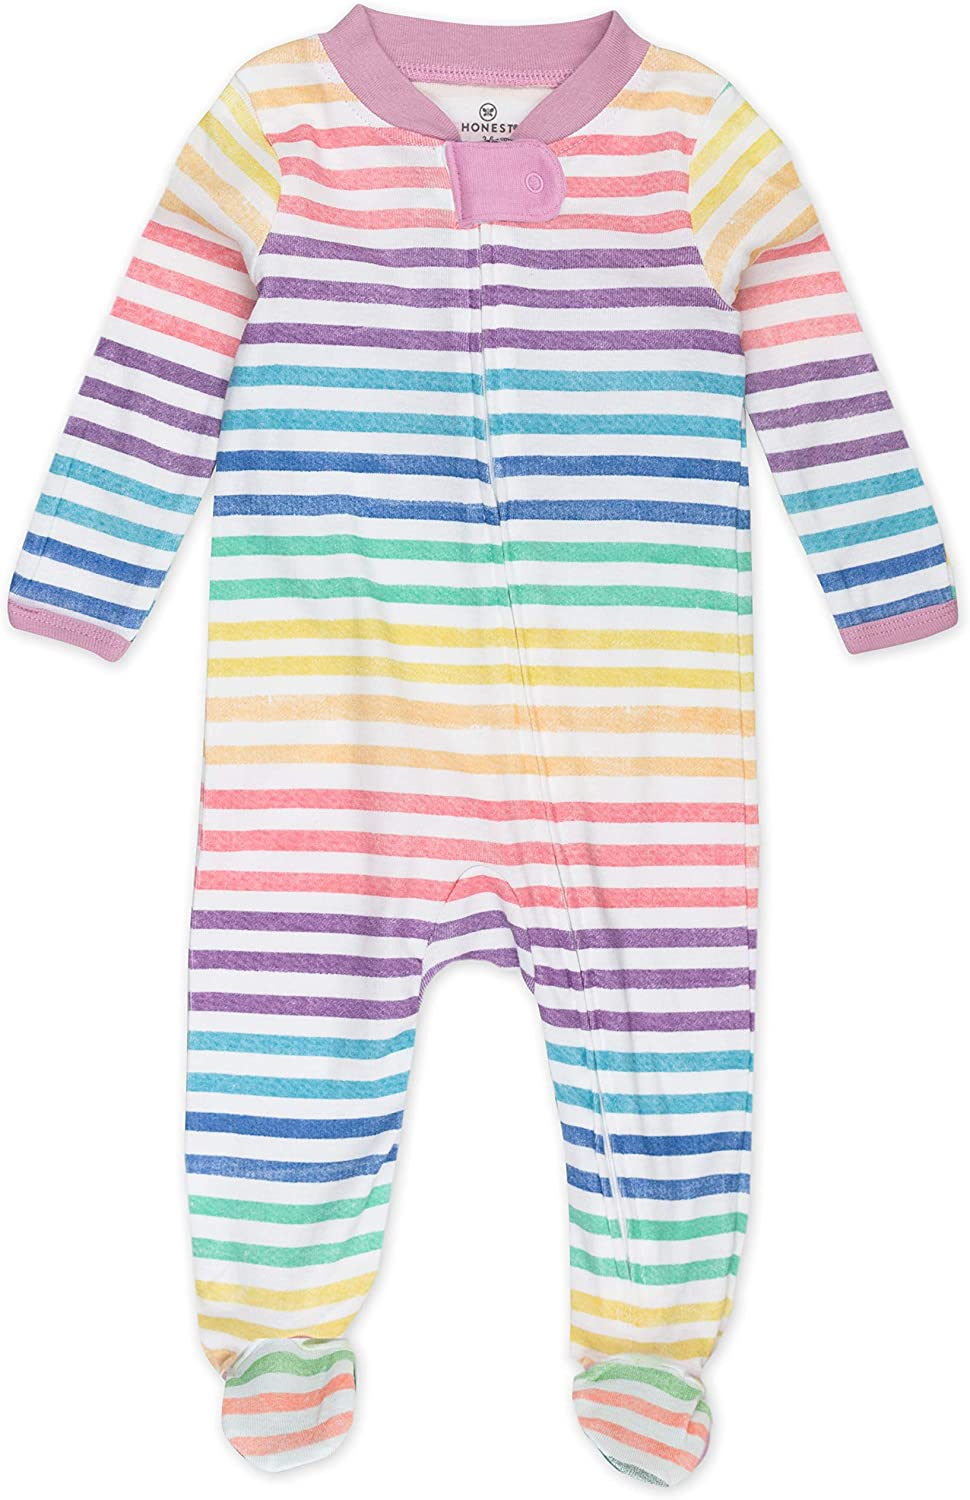 HonestBaby Baby 1-Piece Footed Sleep N Play 6-9 Months